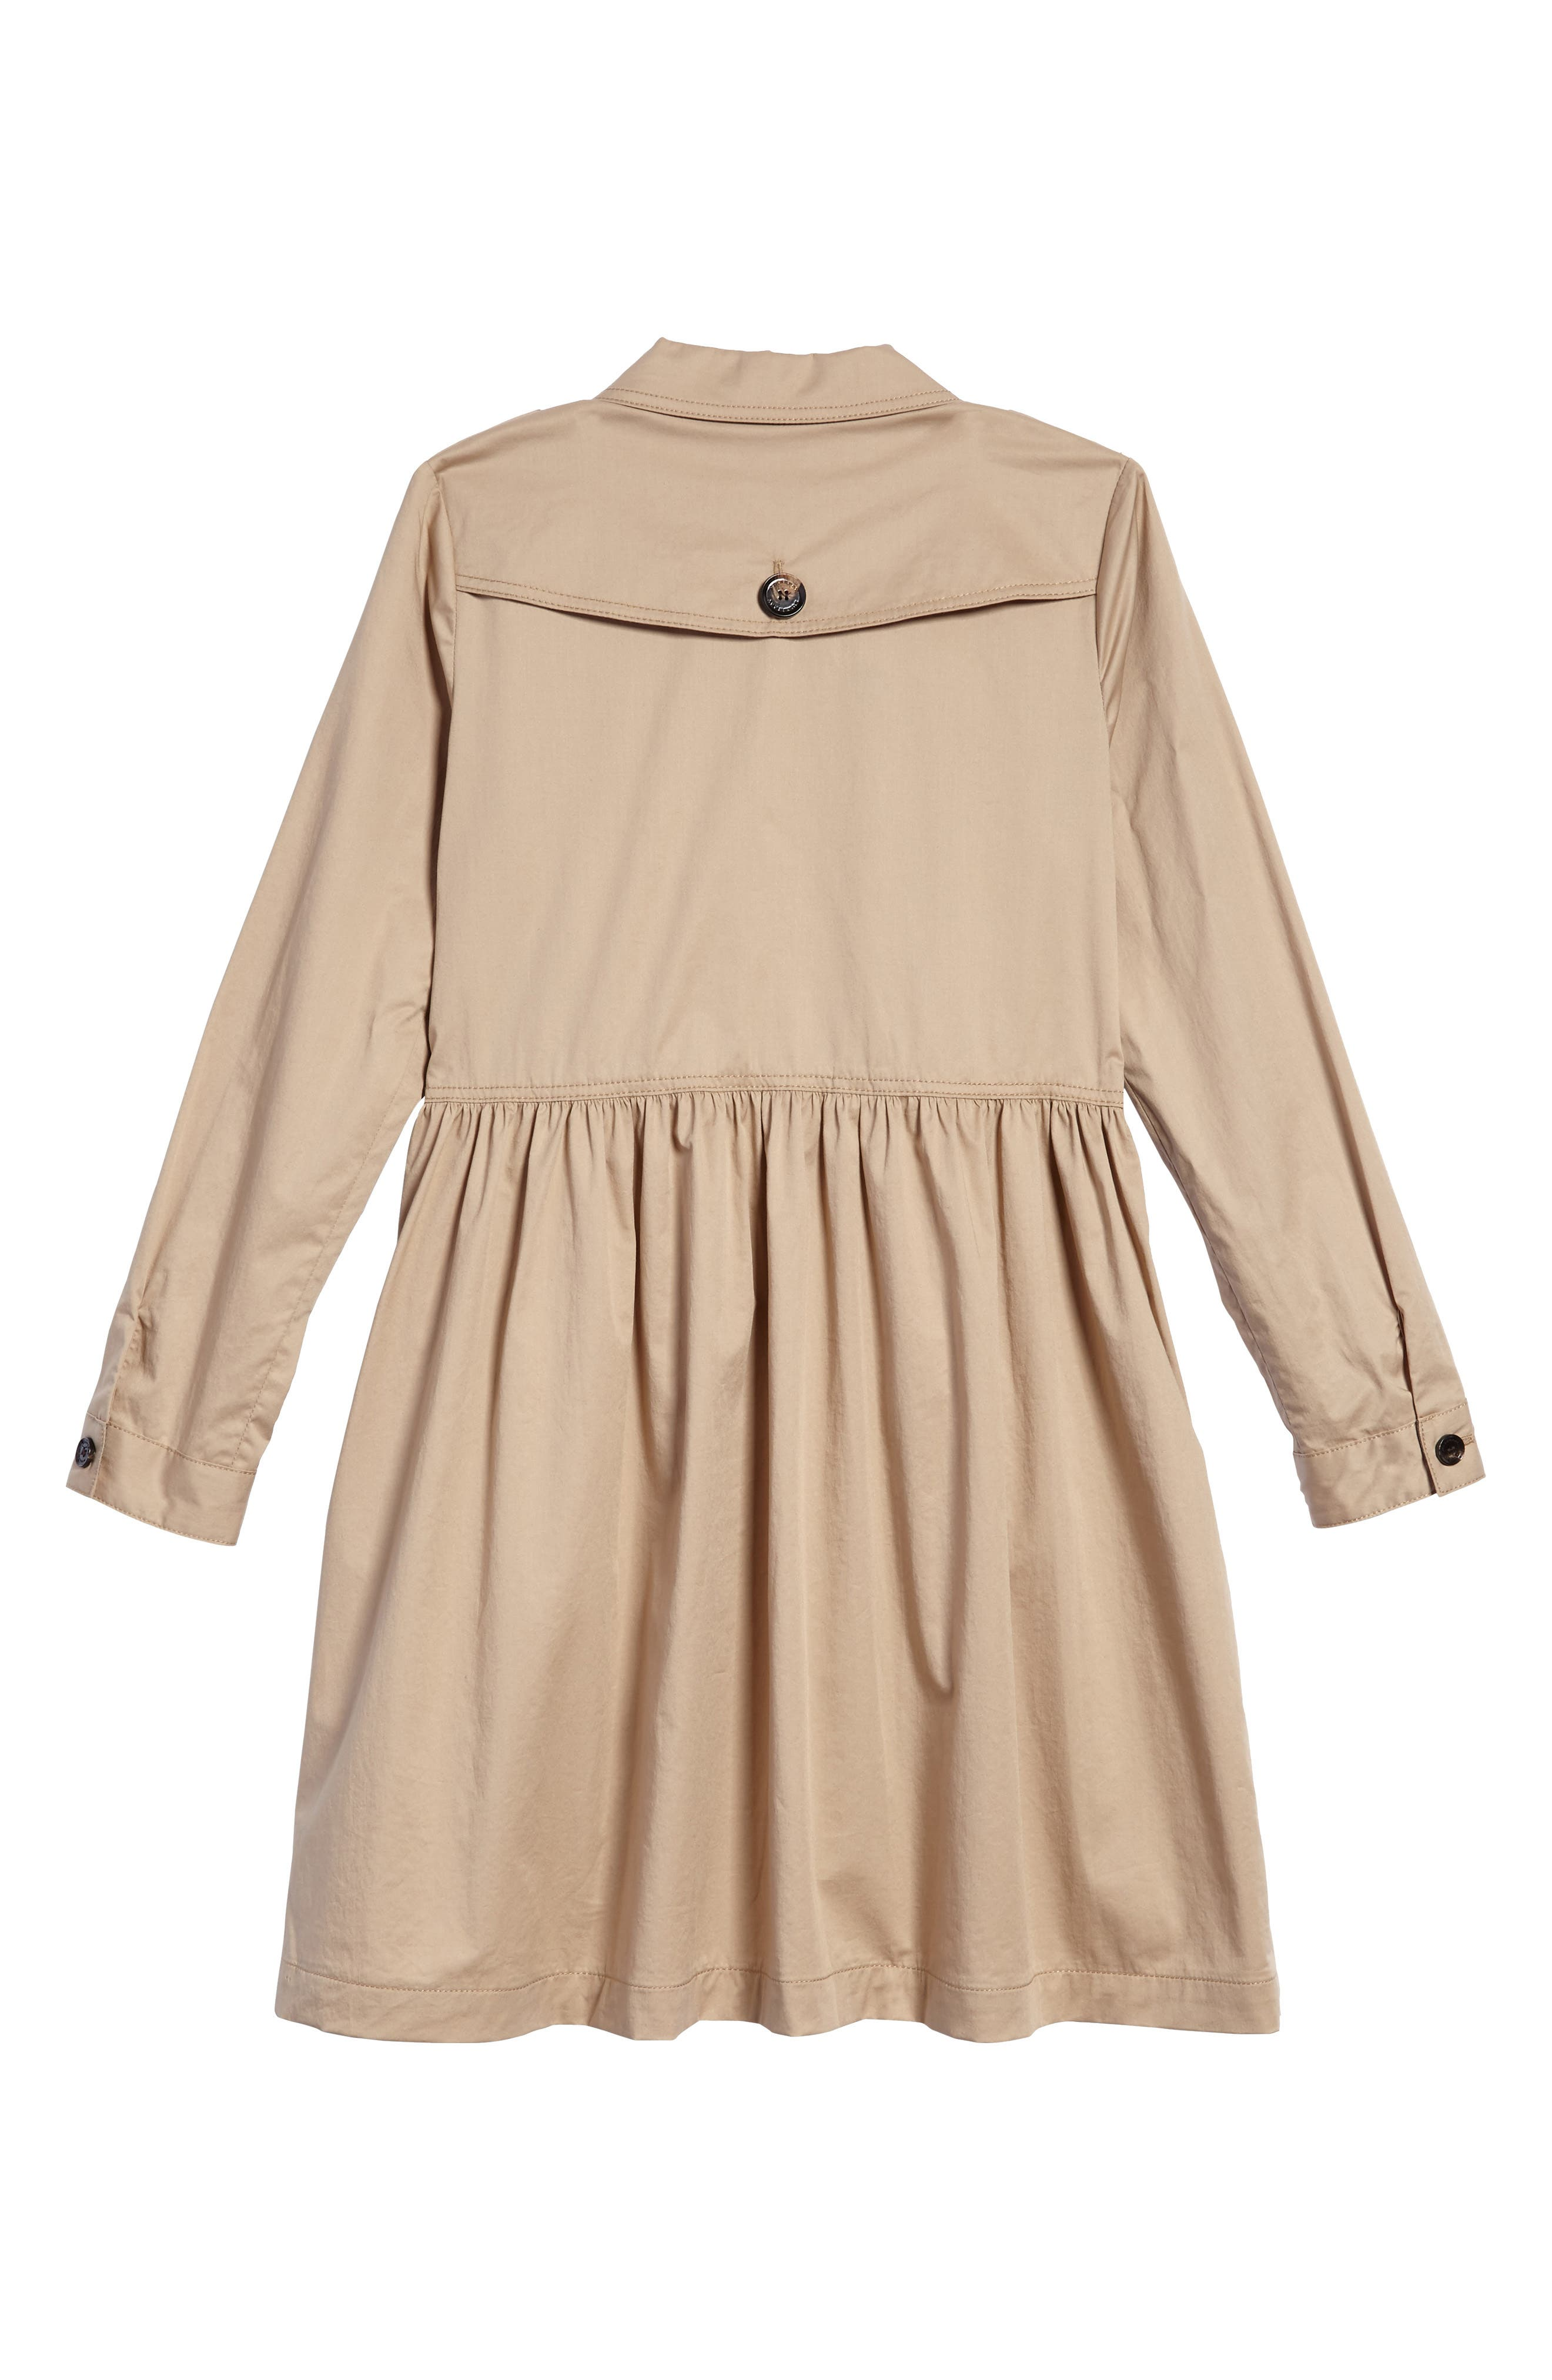 Alternate Image 2  - Burberry Lillyana Trench Dress (Little Girls & Big Girls)